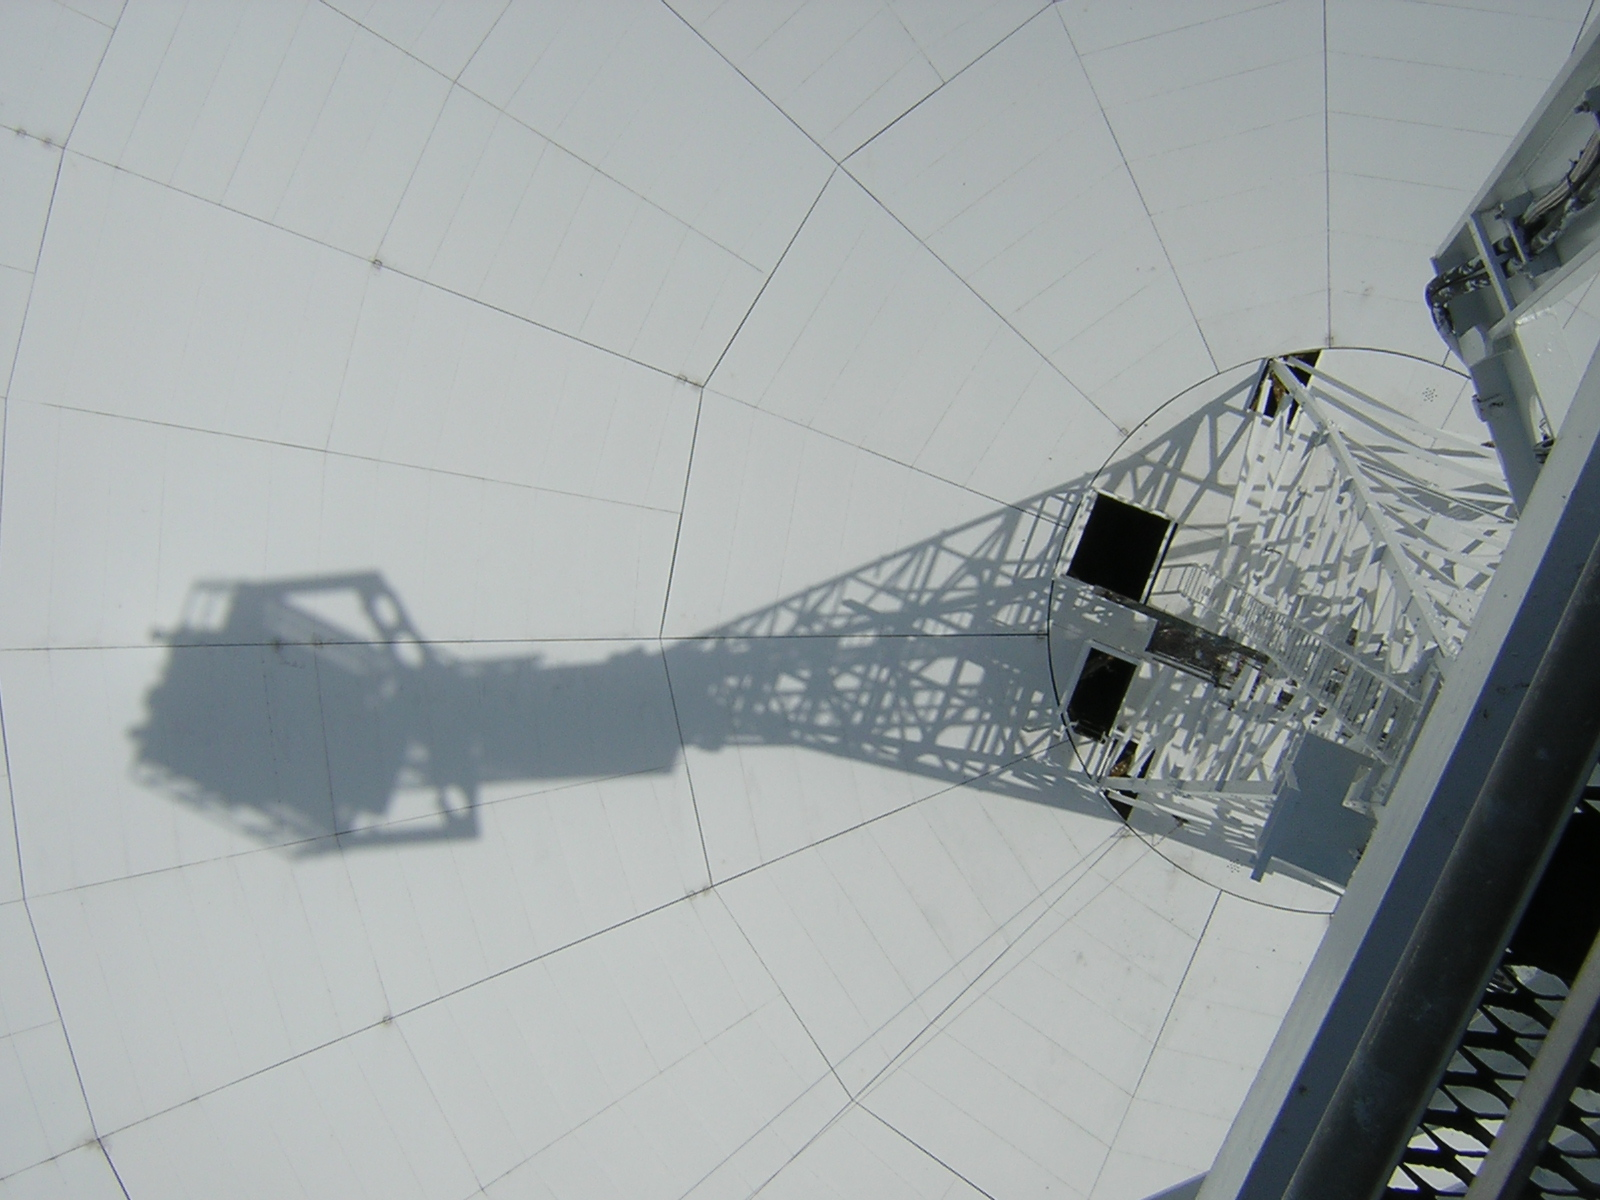 The bowl of the Lovell telescope from the top of the focus tower